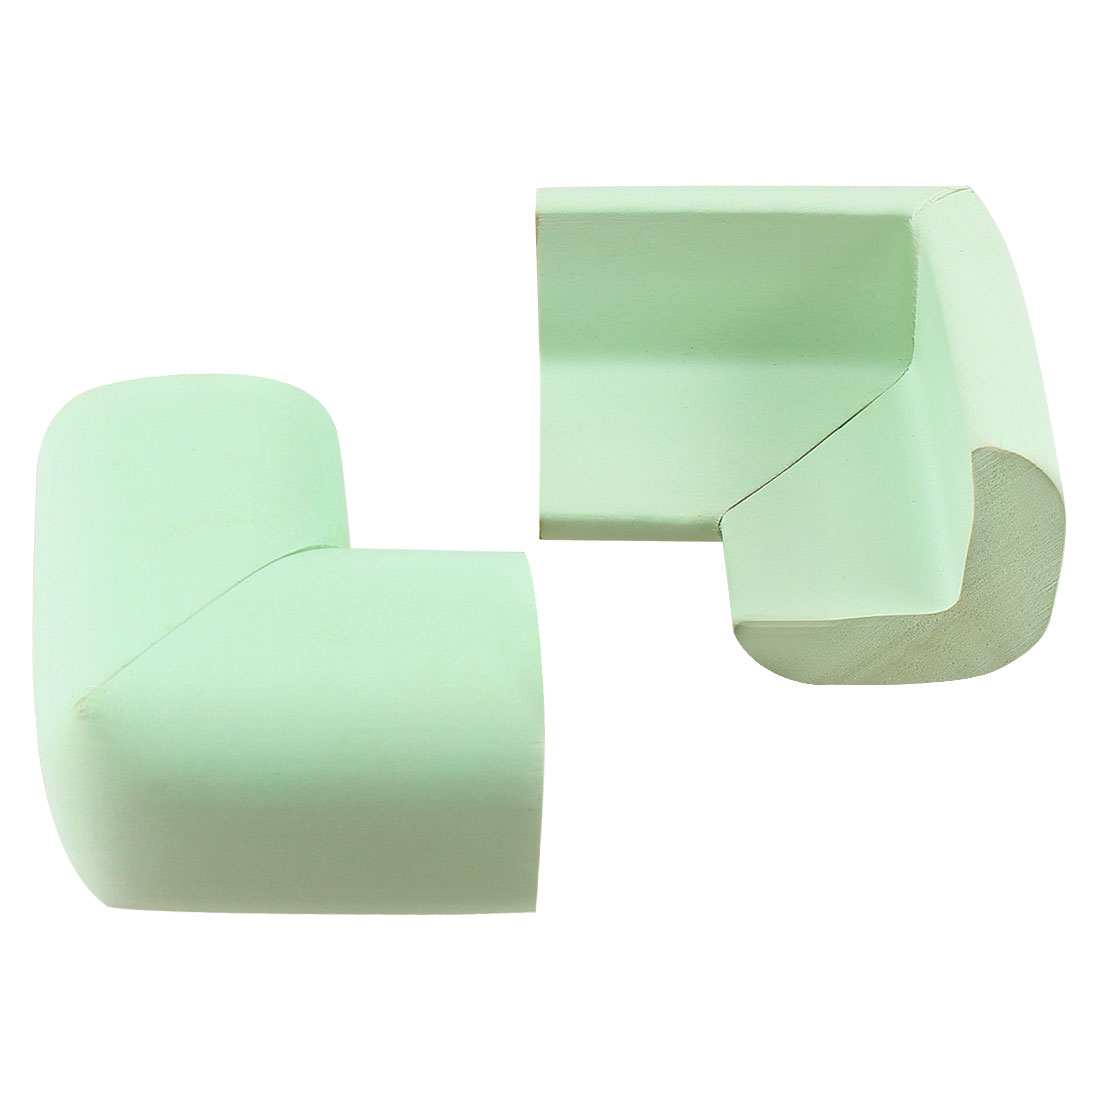 Light Green Foam Table Desk Cupboard Corner Mat Cover Guard Protector Cushion 2 Pcs